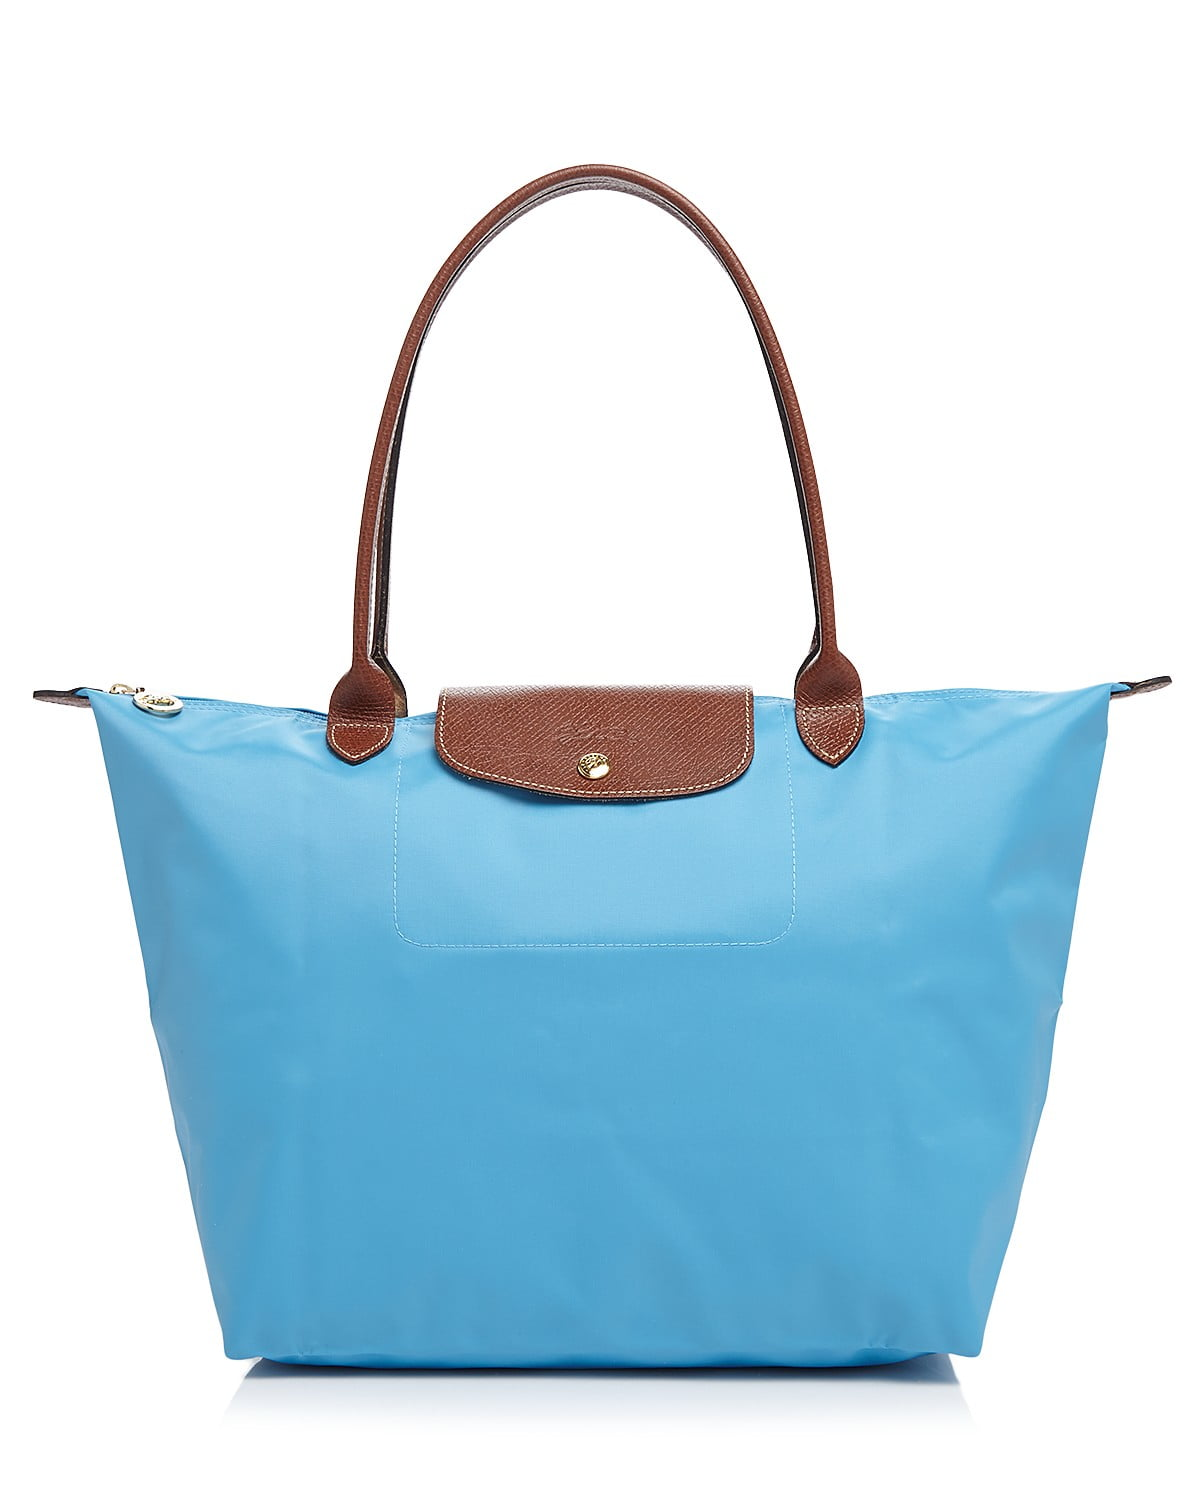 72492c0957 Carry It ALL  The Best Designer Tote Bags - PurseBop